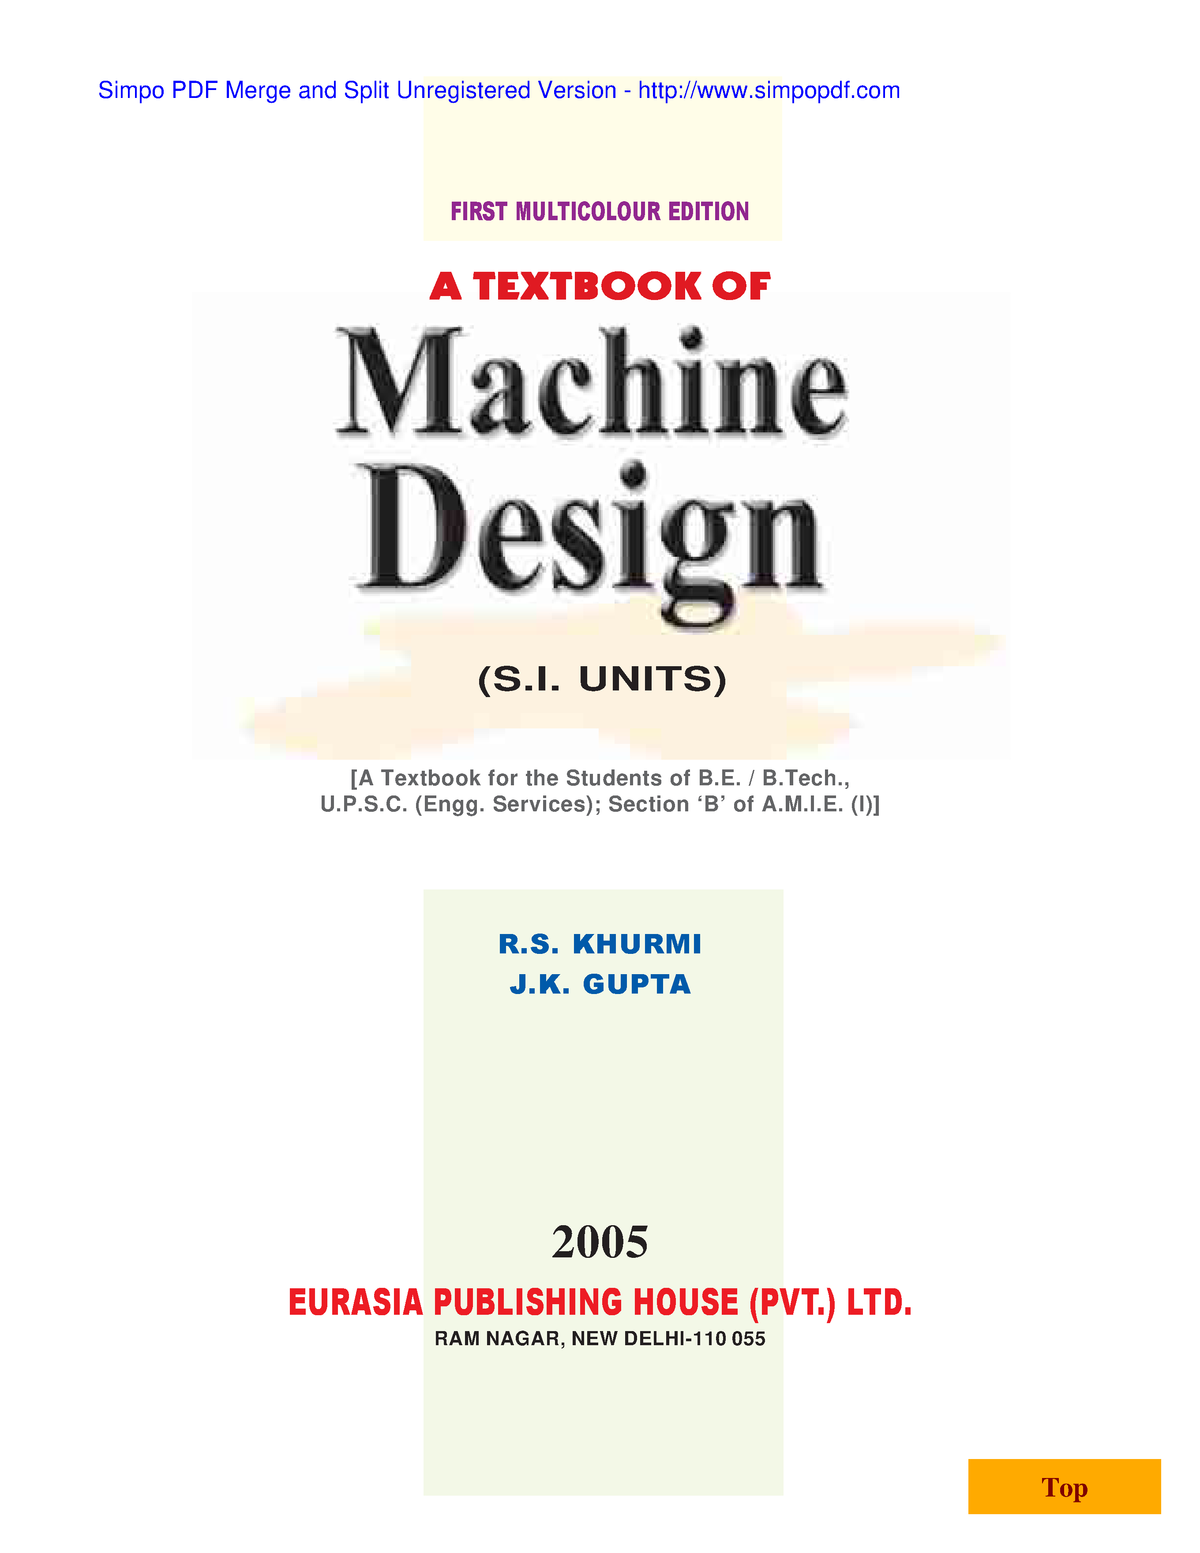 A textbook of machine design khurmi gupta - bdd - StuDocu